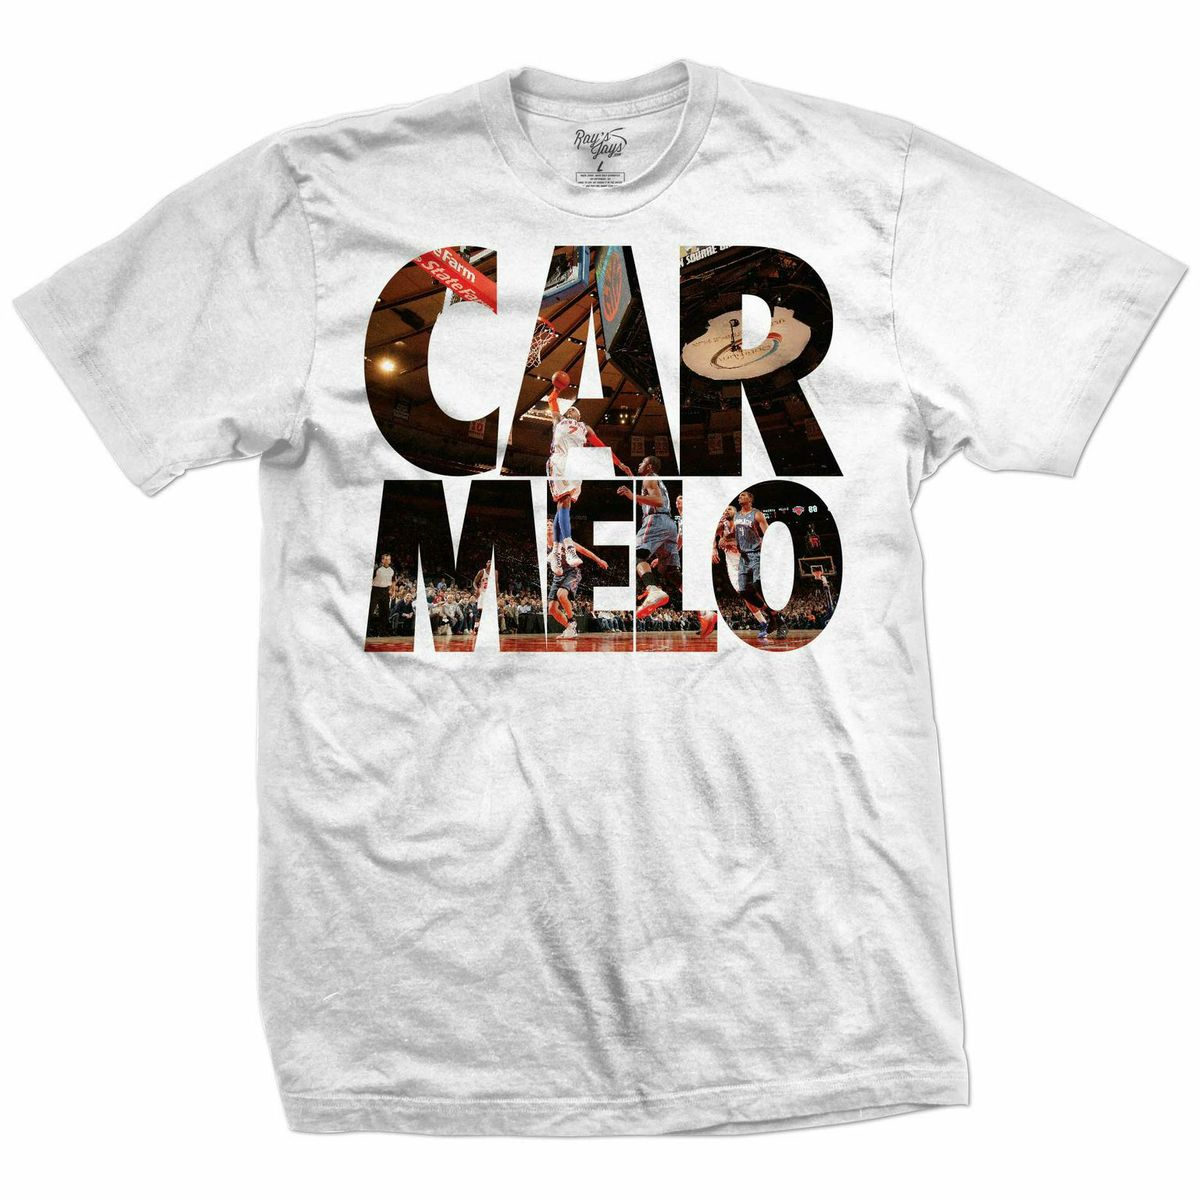 size 40 9cf65 915f0 Rays Jays Carmelo and Born and Raised Sneaker Tees – X Gear ...